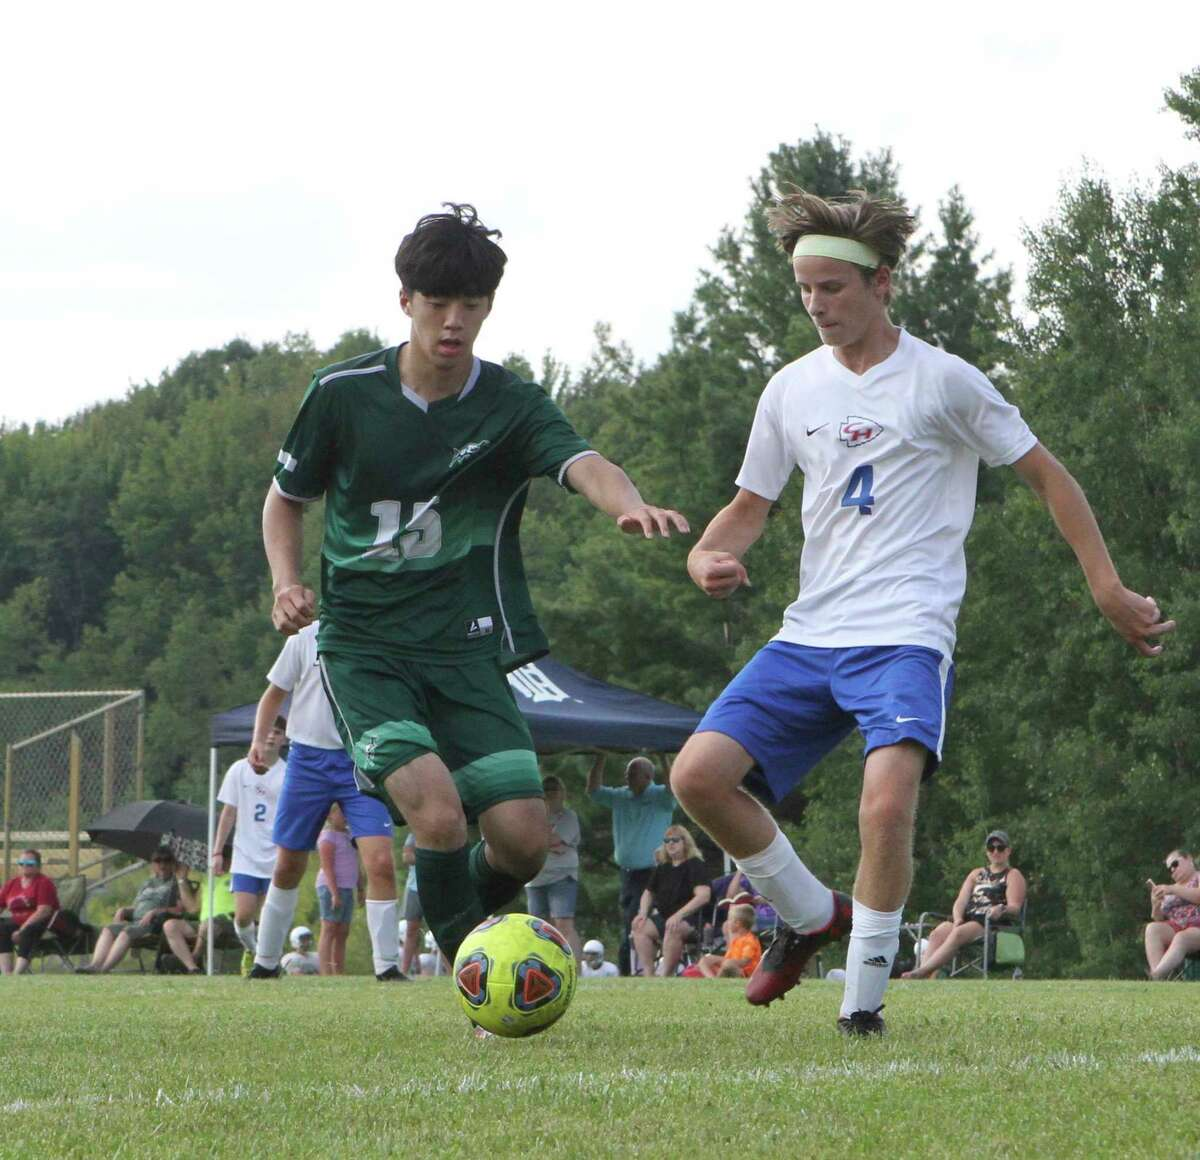 Pine River's Hoon Yang (right) battles with Jonah Fiegel of Chippewa Hills for possession of the ball during Friday night's soccer match. (Pioneer photo/Joe Judd)